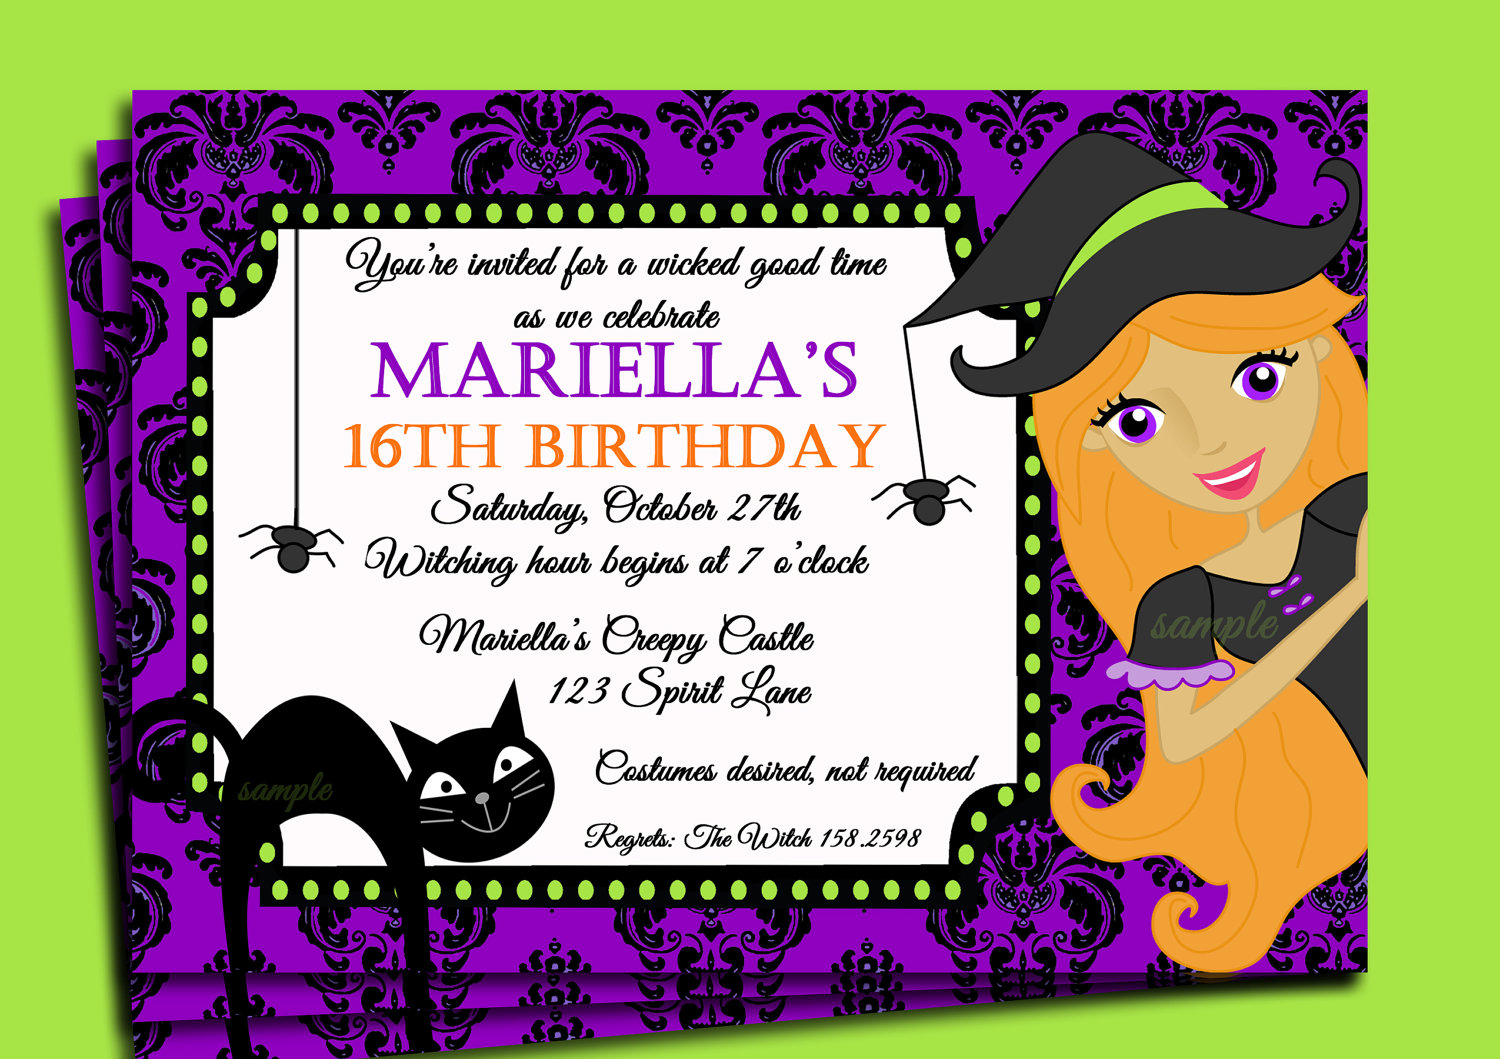 Halloween birthday party invitation wording dolanpedia halloween stopboris